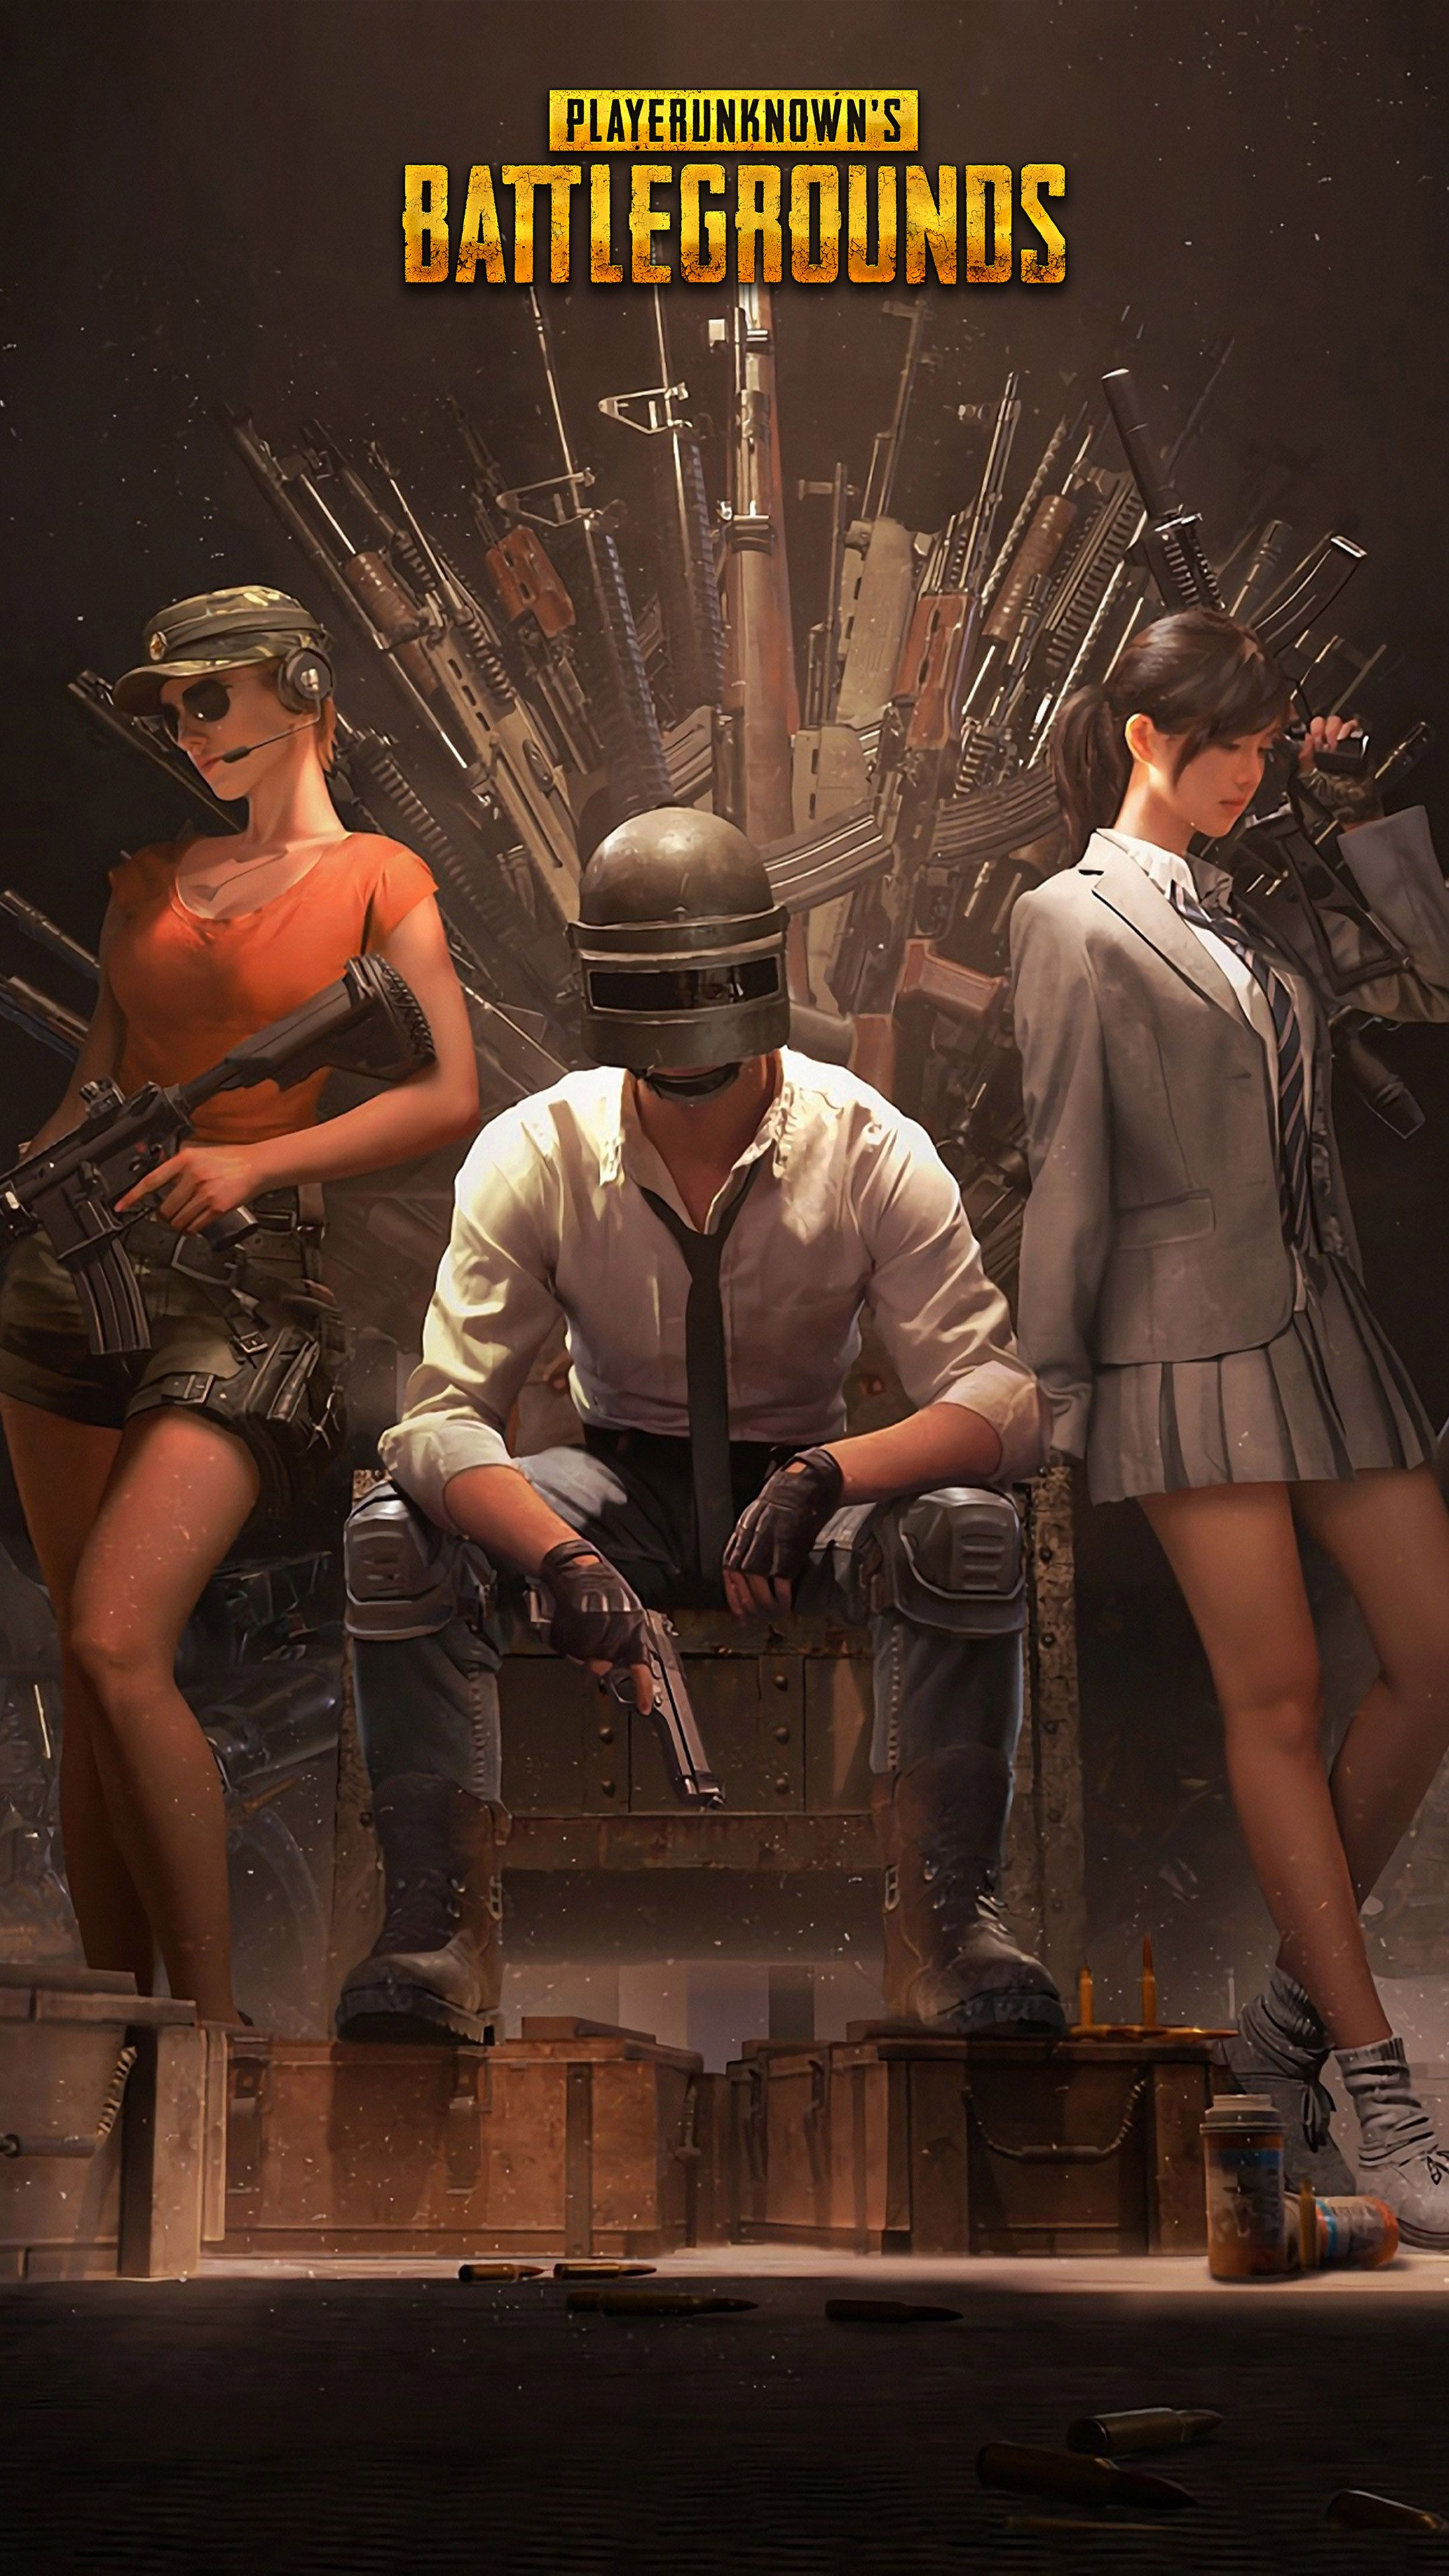 PUBG Helmet Guy With Girls Playerunknown's Battlegrounds